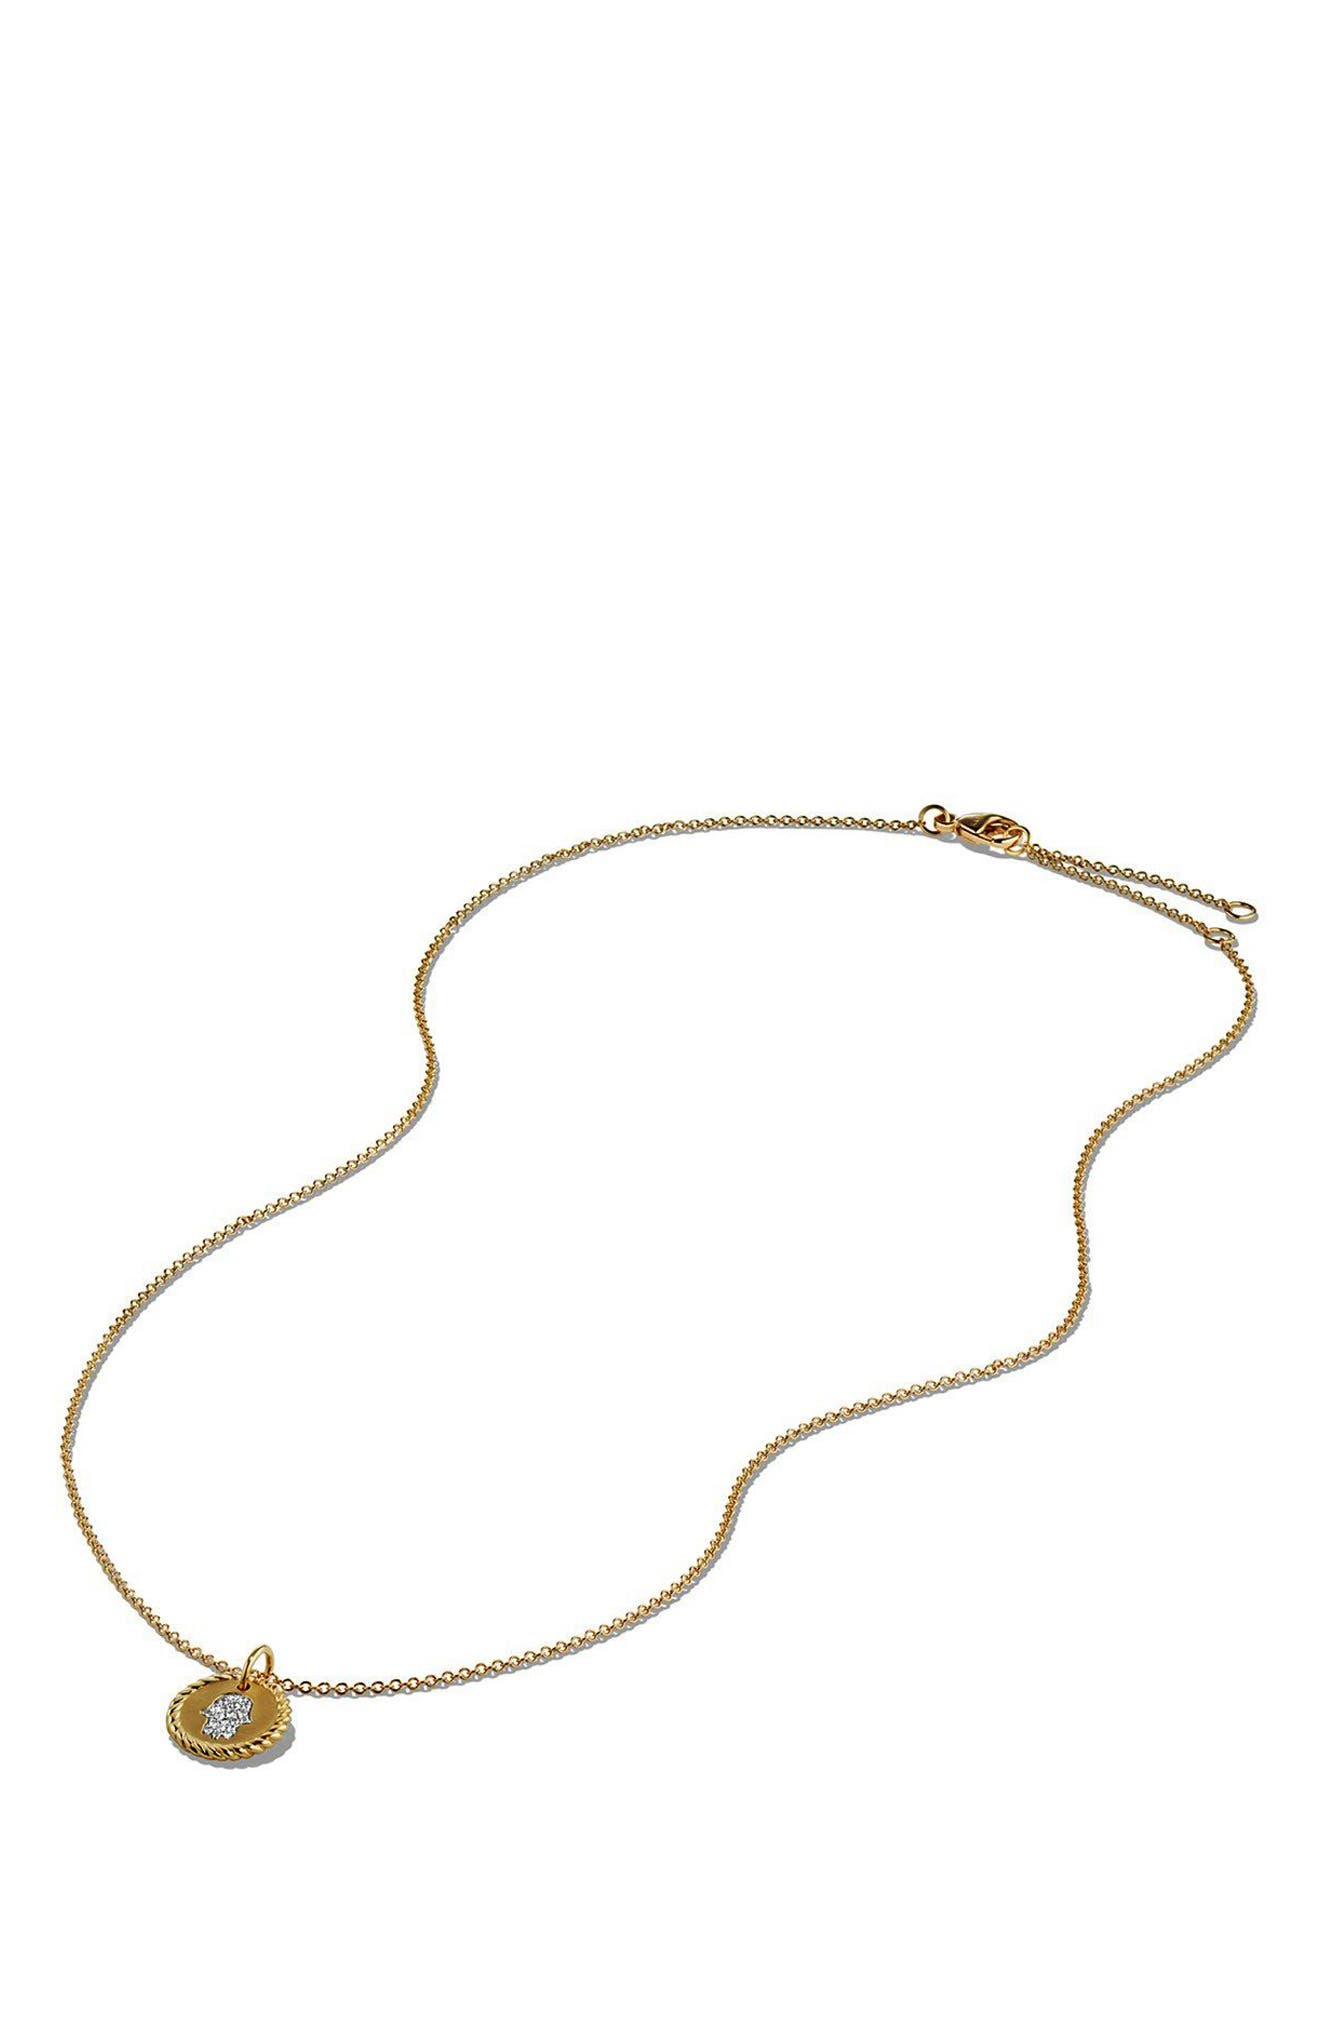 'Cable Collectibles' Pavé Charm with Diamonds in Gold,                             Alternate thumbnail 4, color,                             GOLD